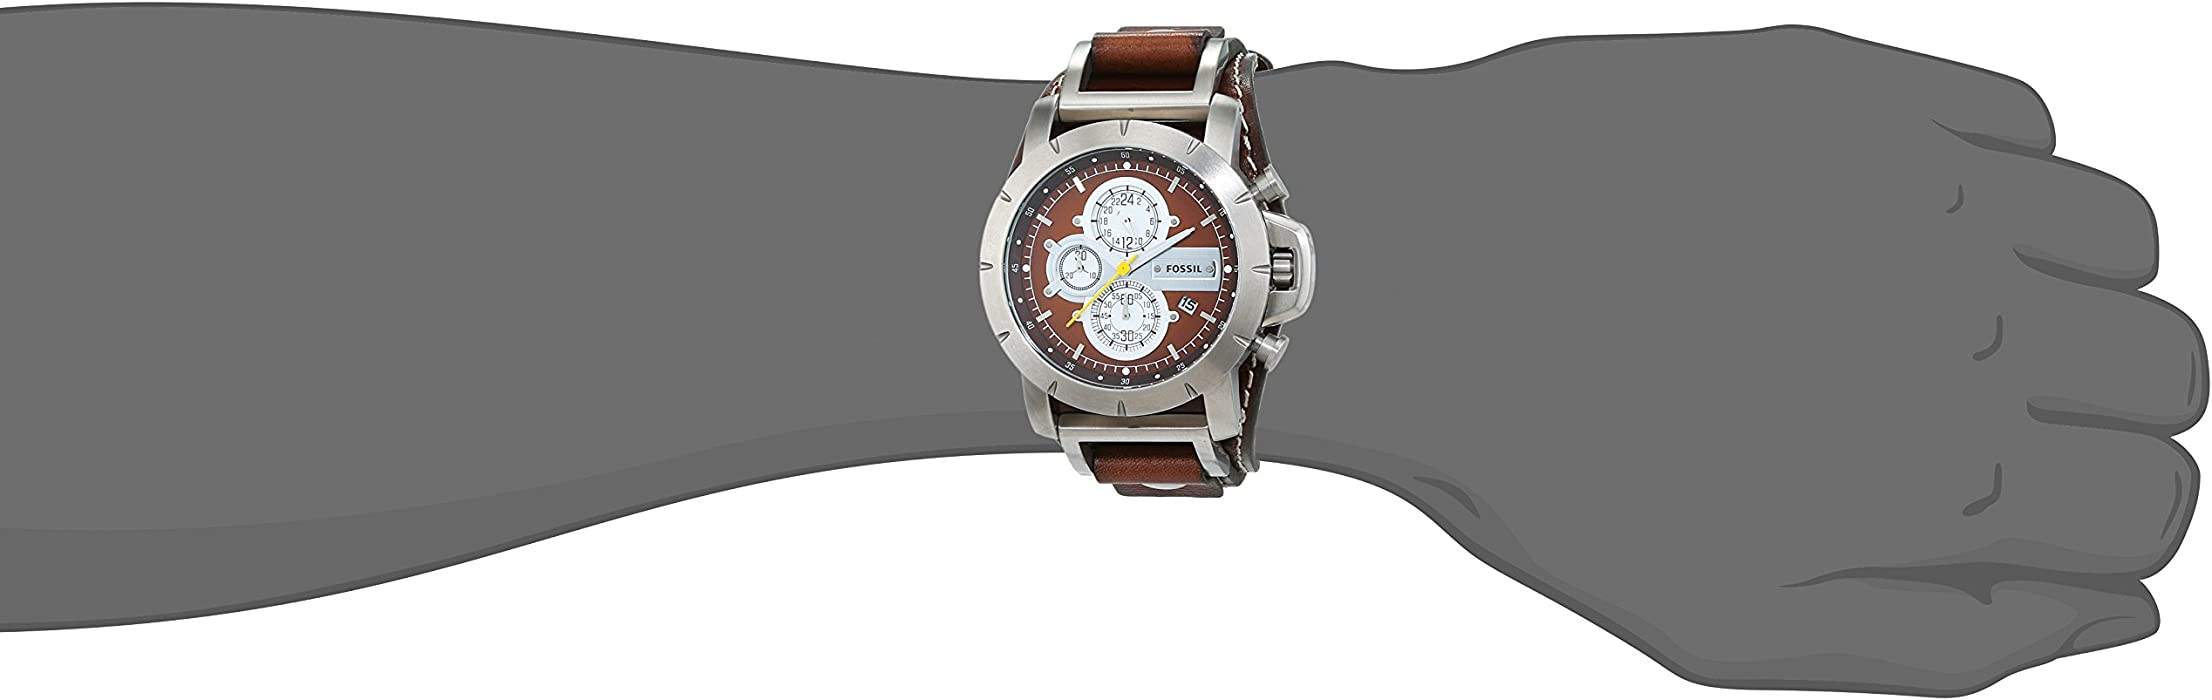 Mens JR1157 Brown Leather Strap Brown Analog Dial Chronograph Watch